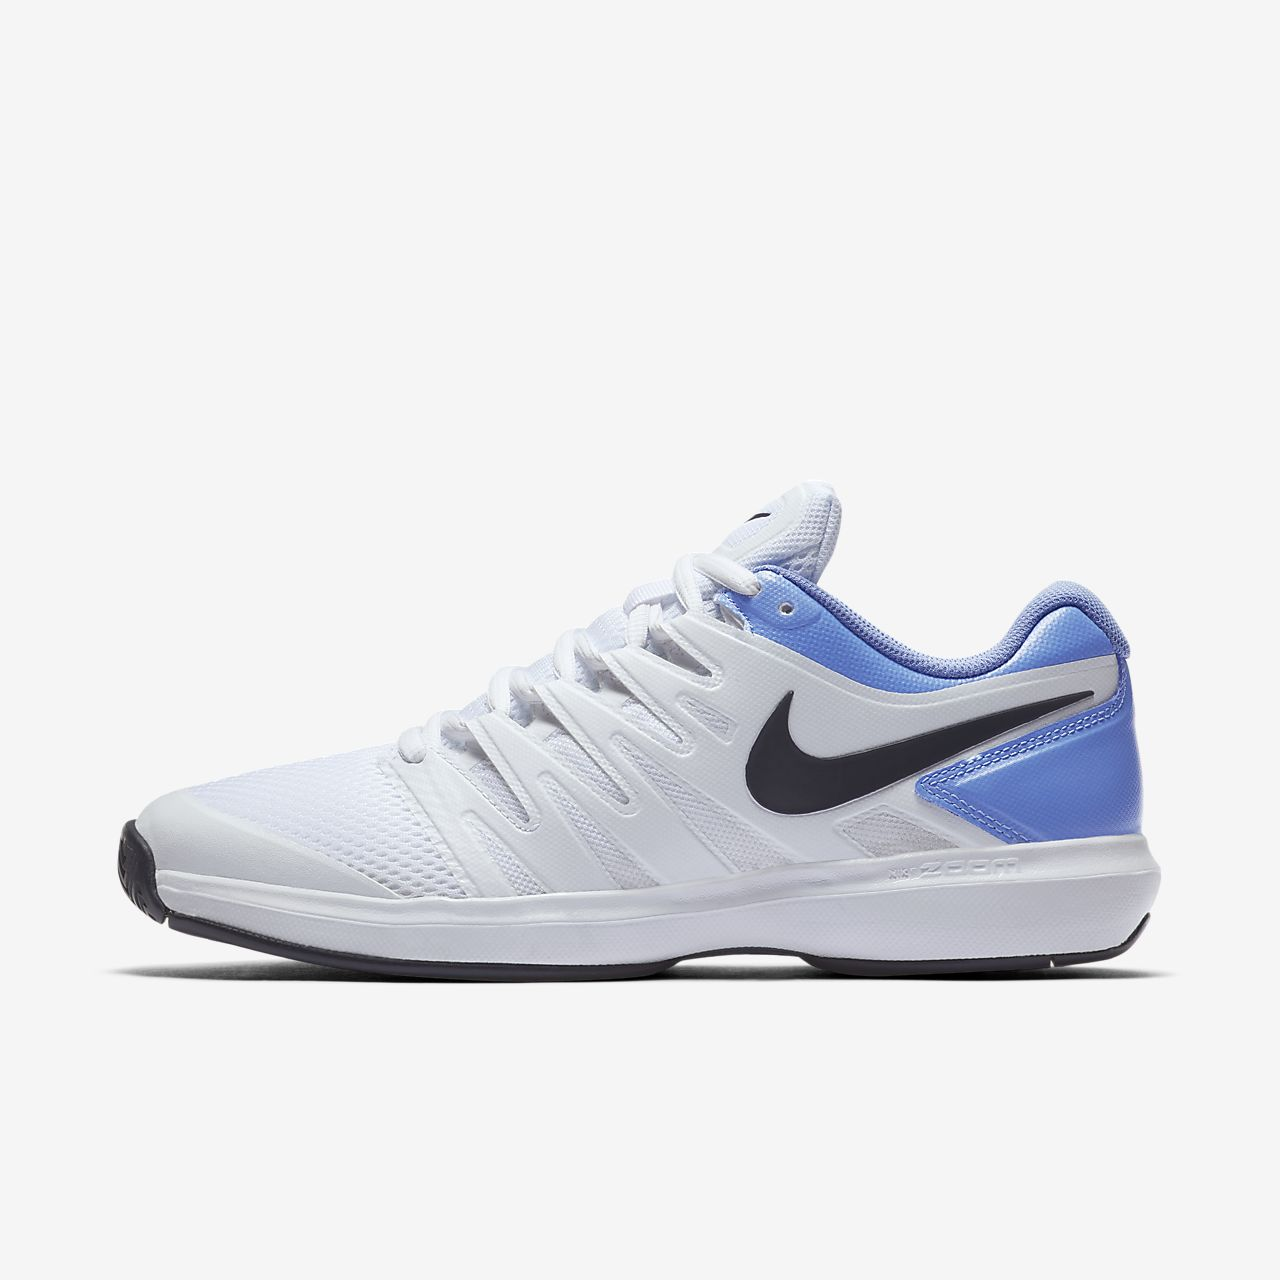 NikeCourt Air Zoom Prestige Tennisschoen voor heren